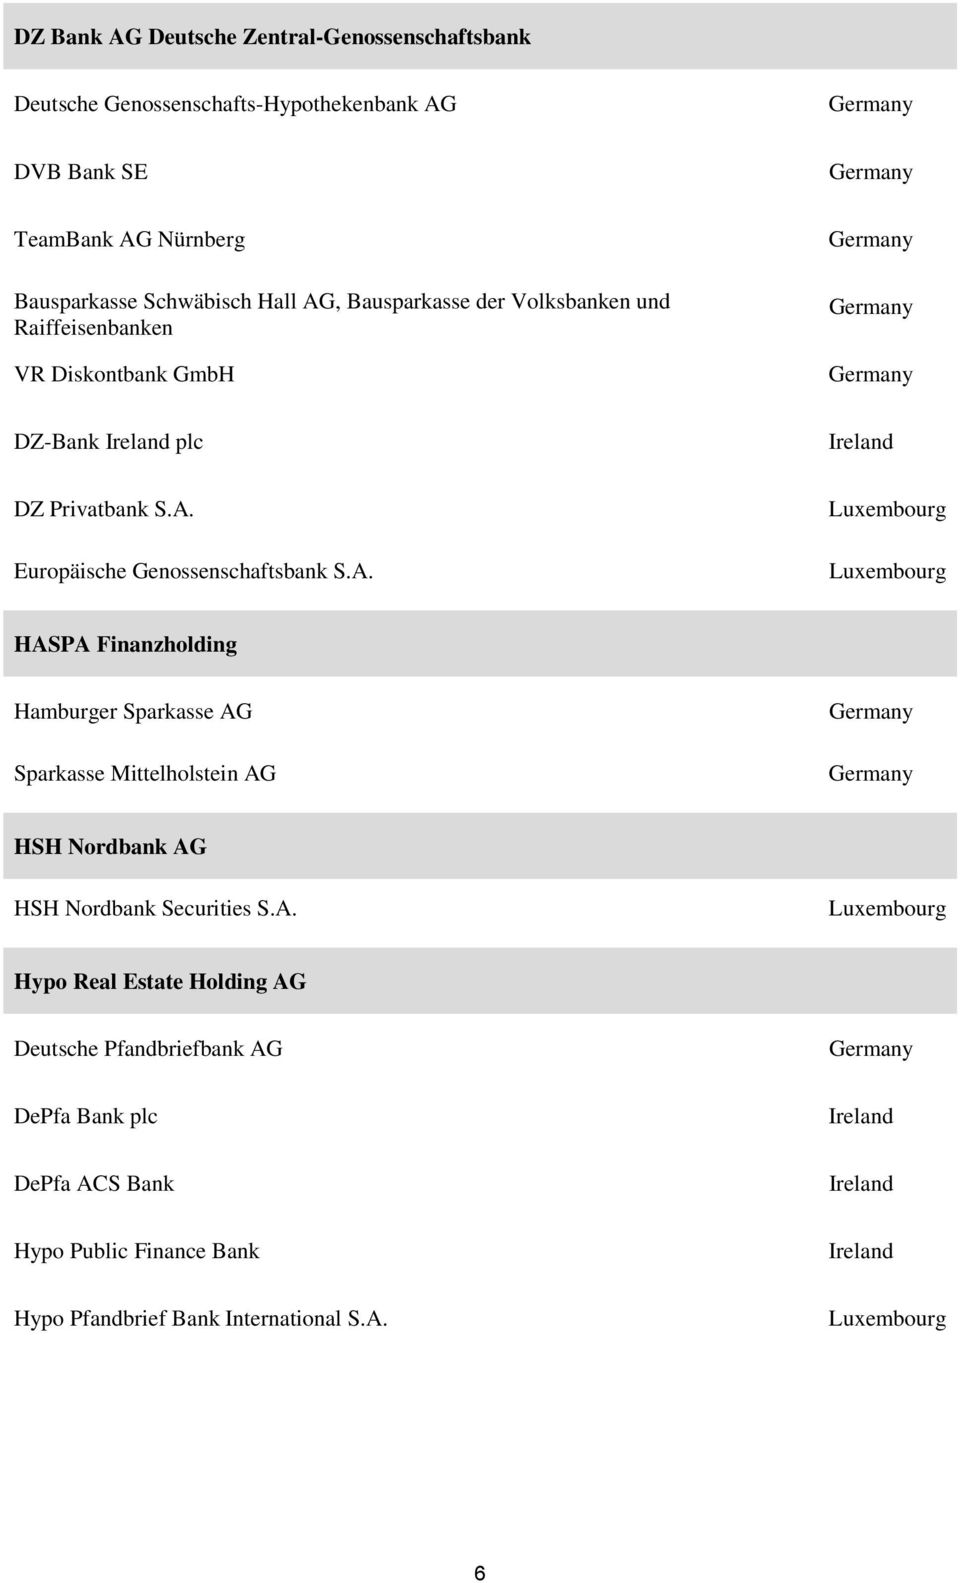 A. HASPA Finanzholding Hamburger Sparkasse AG Sparkasse Mittelholstein AG HSH Nordbank AG HSH Nordbank Securities S.A. Hypo Real Estate Holding AG